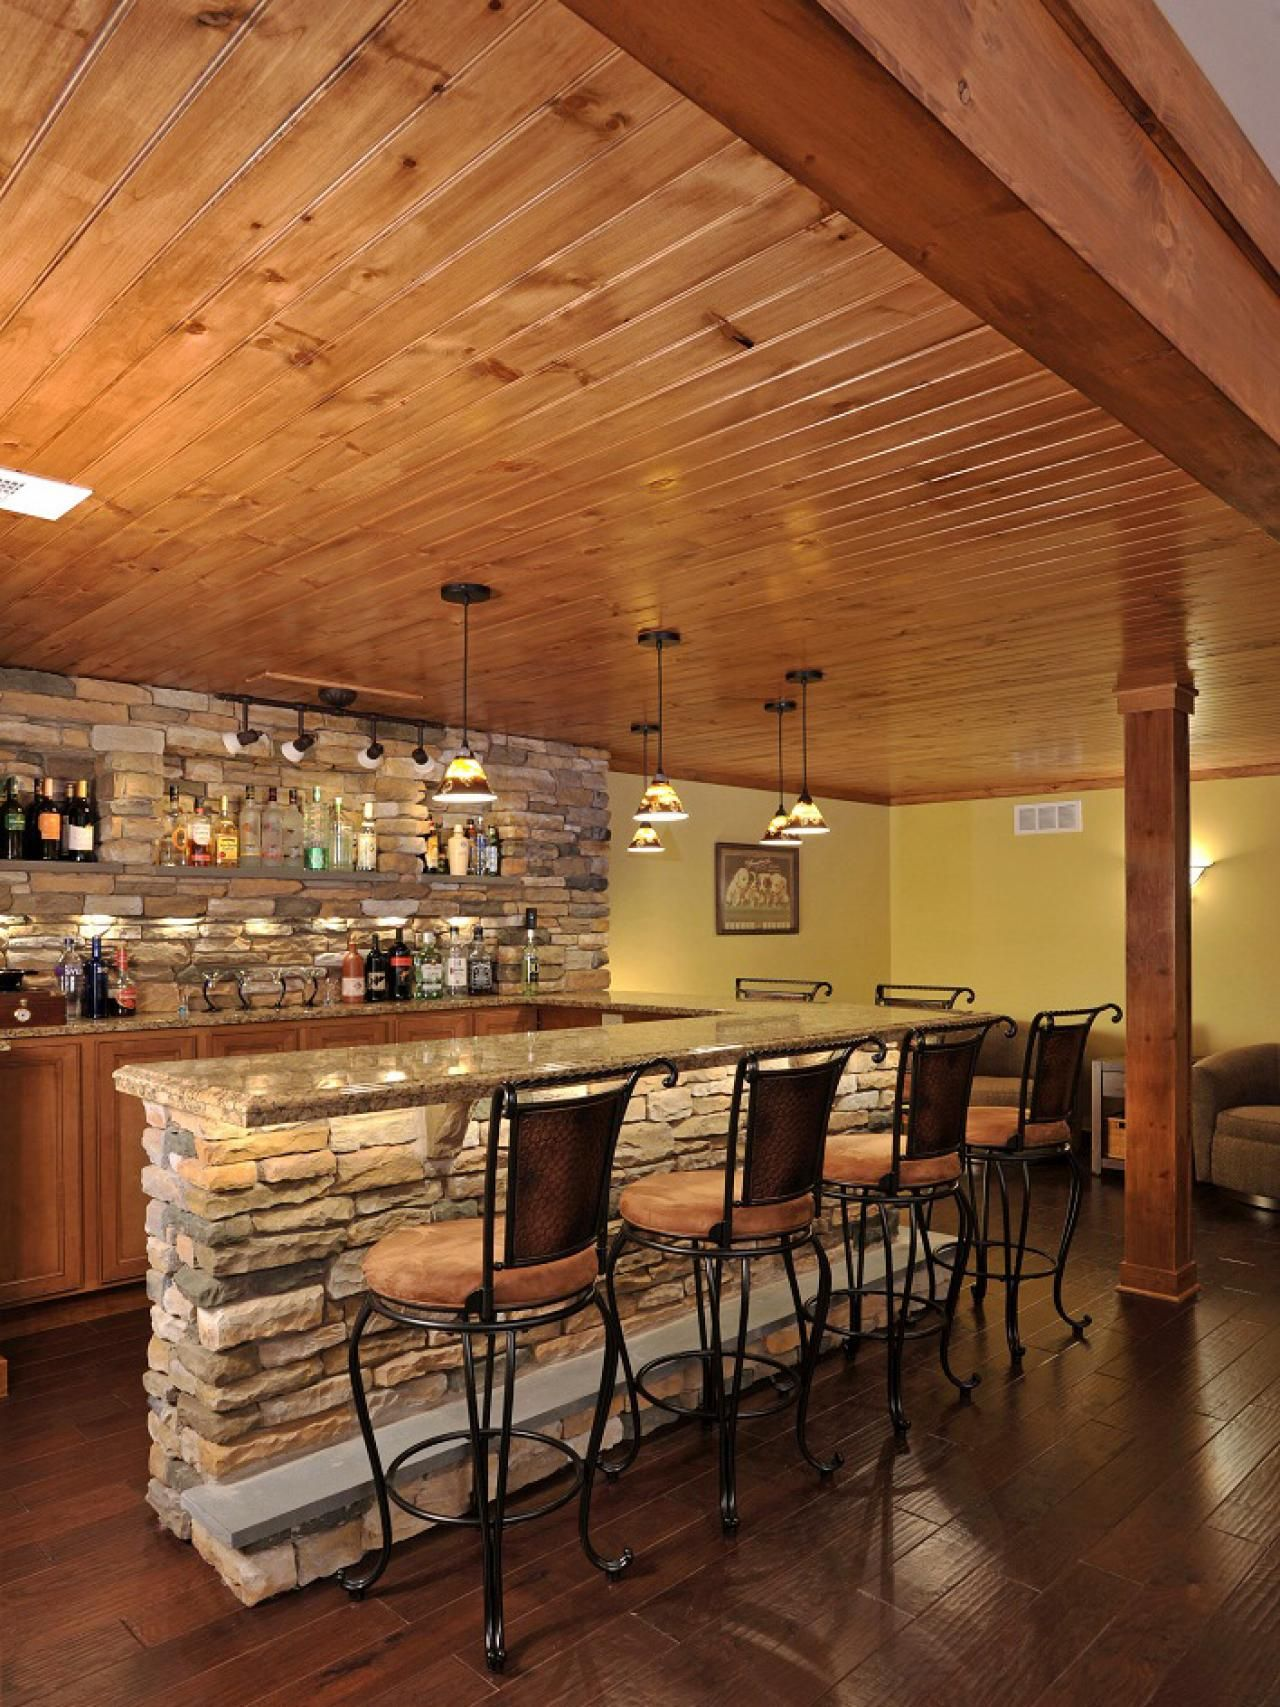 Basement Bar Ideas and Designs: Pictures, Options & Tips | Partyraum ...